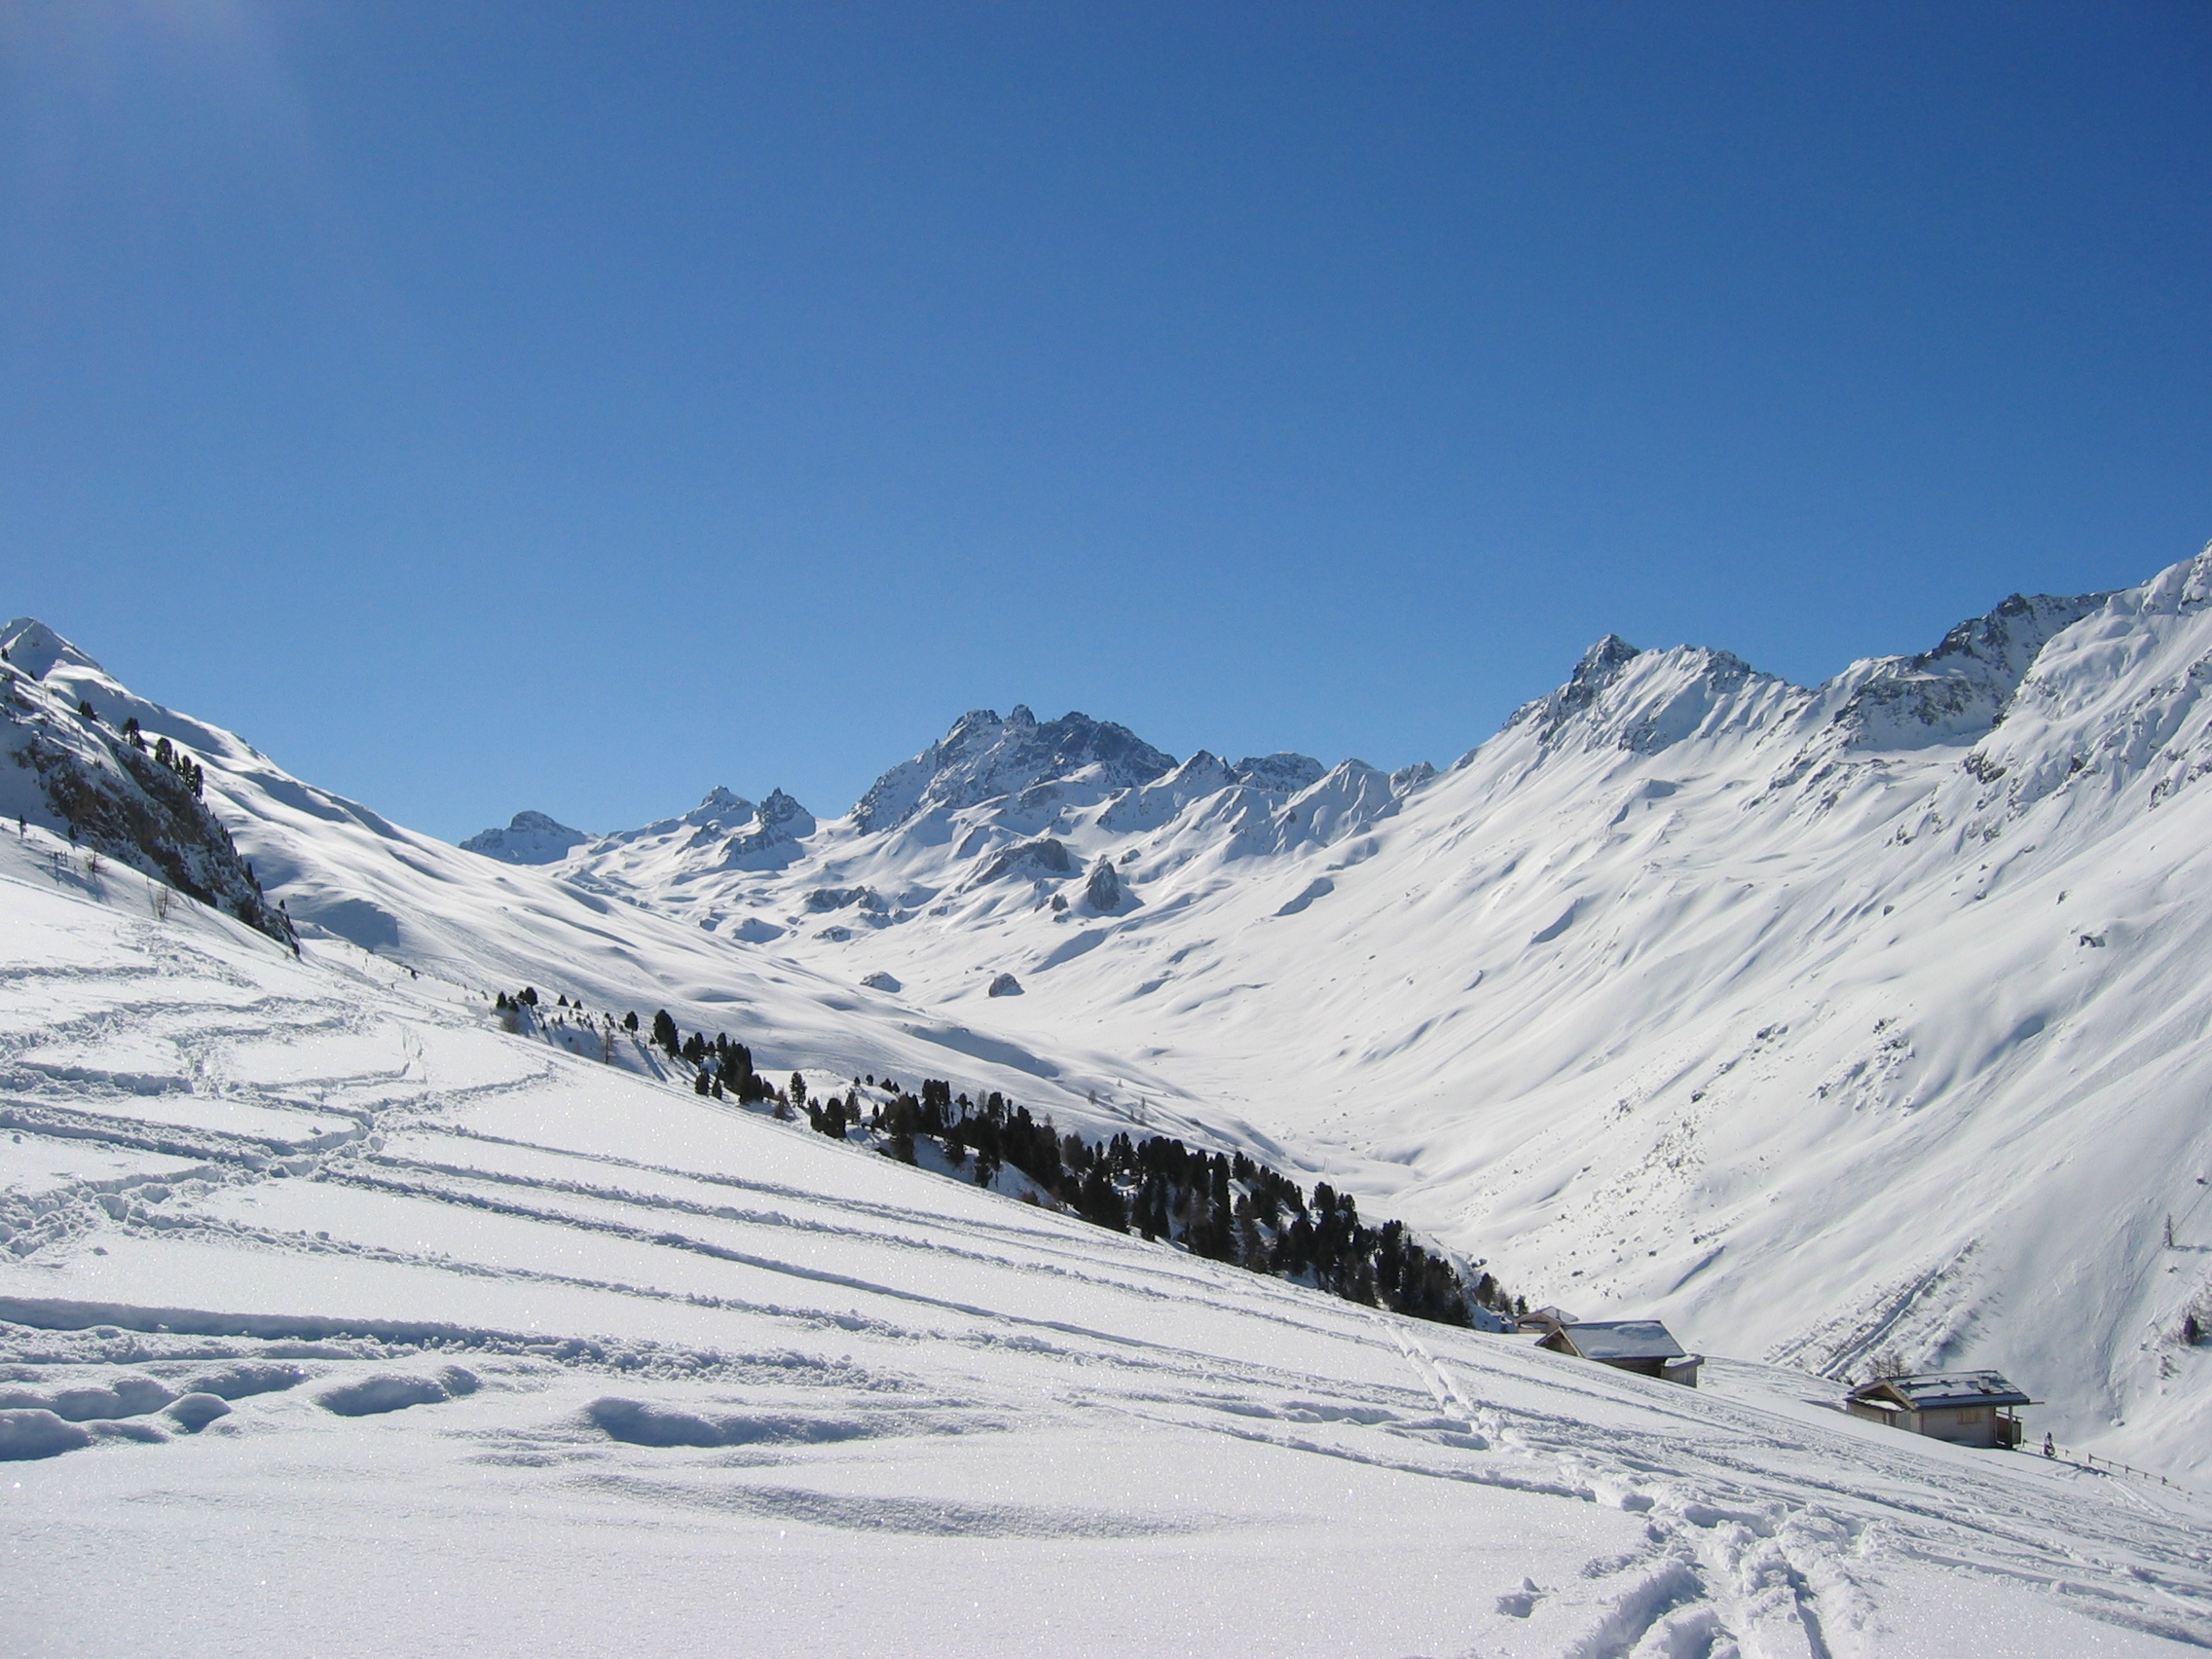 Early morning in Ischgl